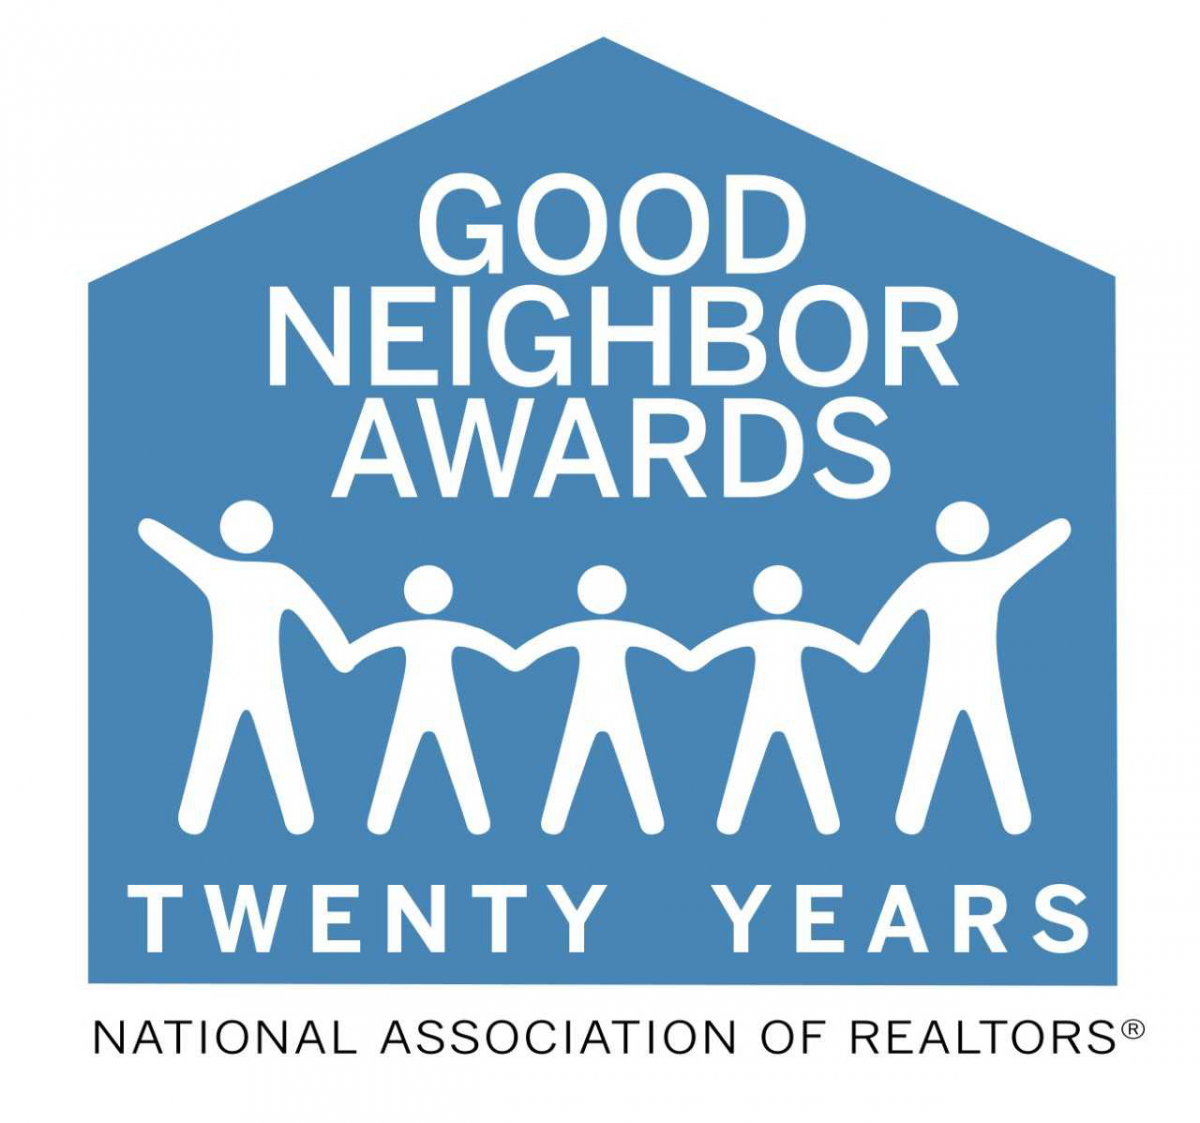 Good Neighbor Awards 20th Anniversary logo